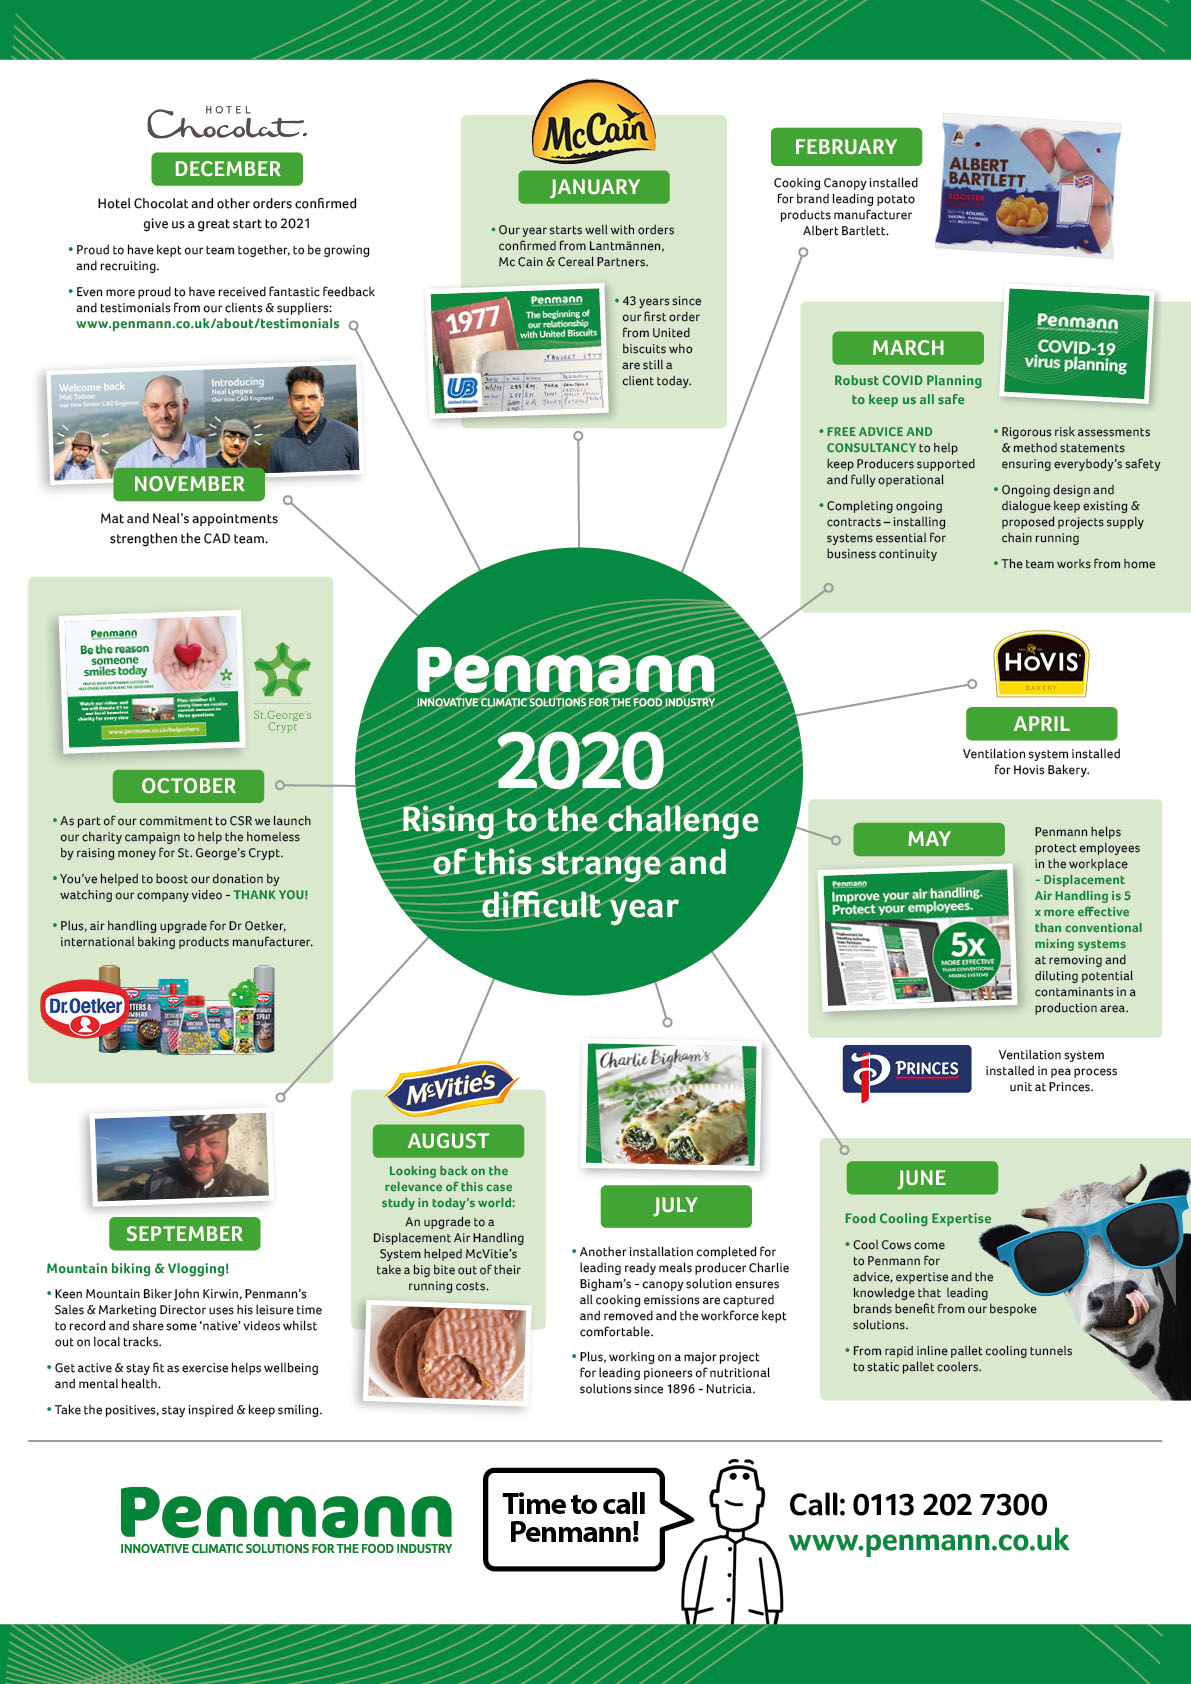 Penmann 2020 - rising to the challenge of this strange and difficult year